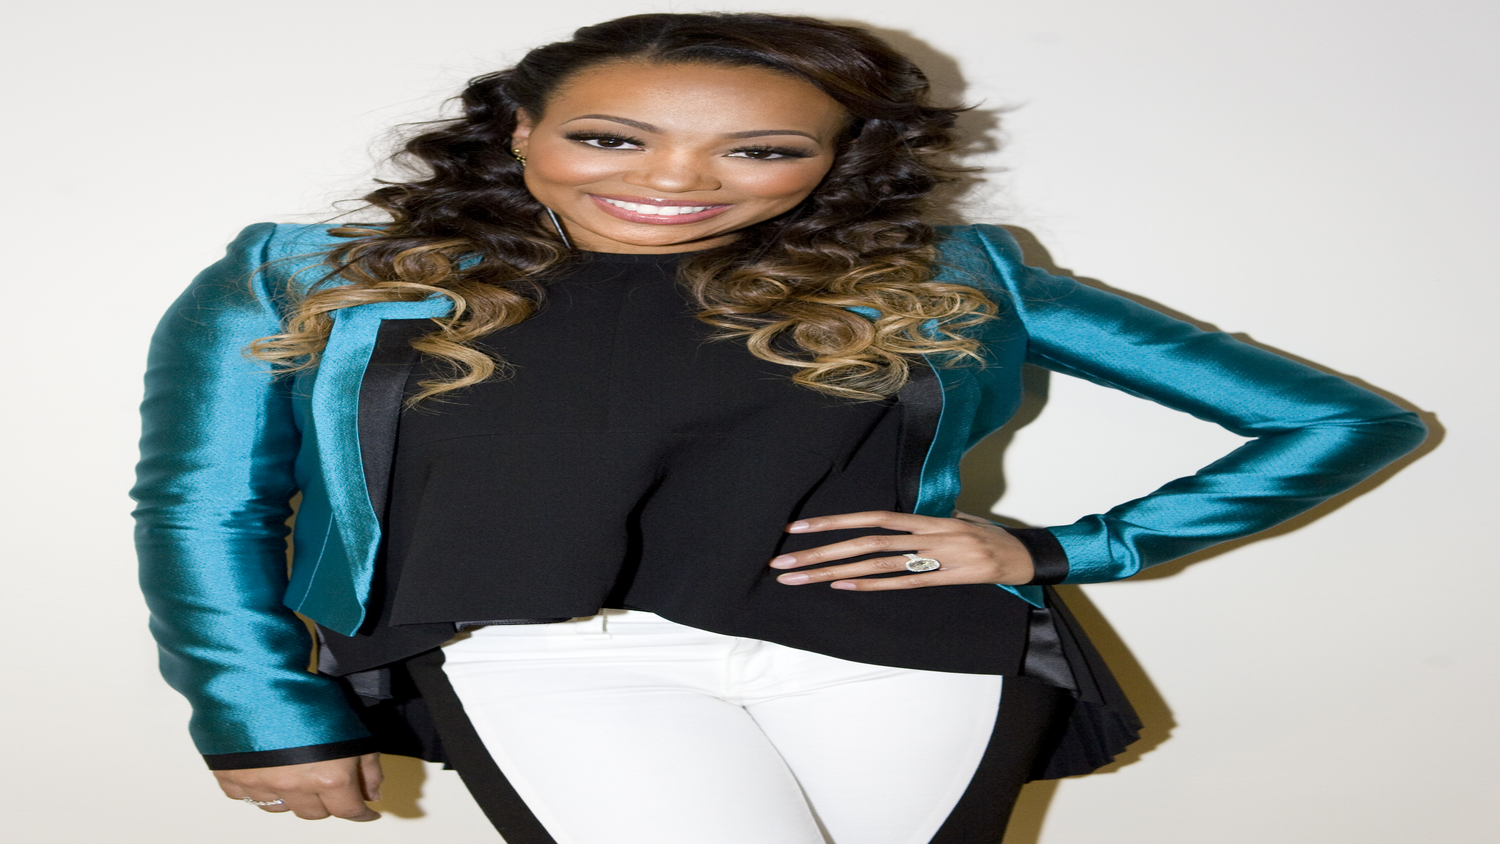 5 Questions with Monica on Her Album 'New Life,' Touring with Brandy and Having More Kids